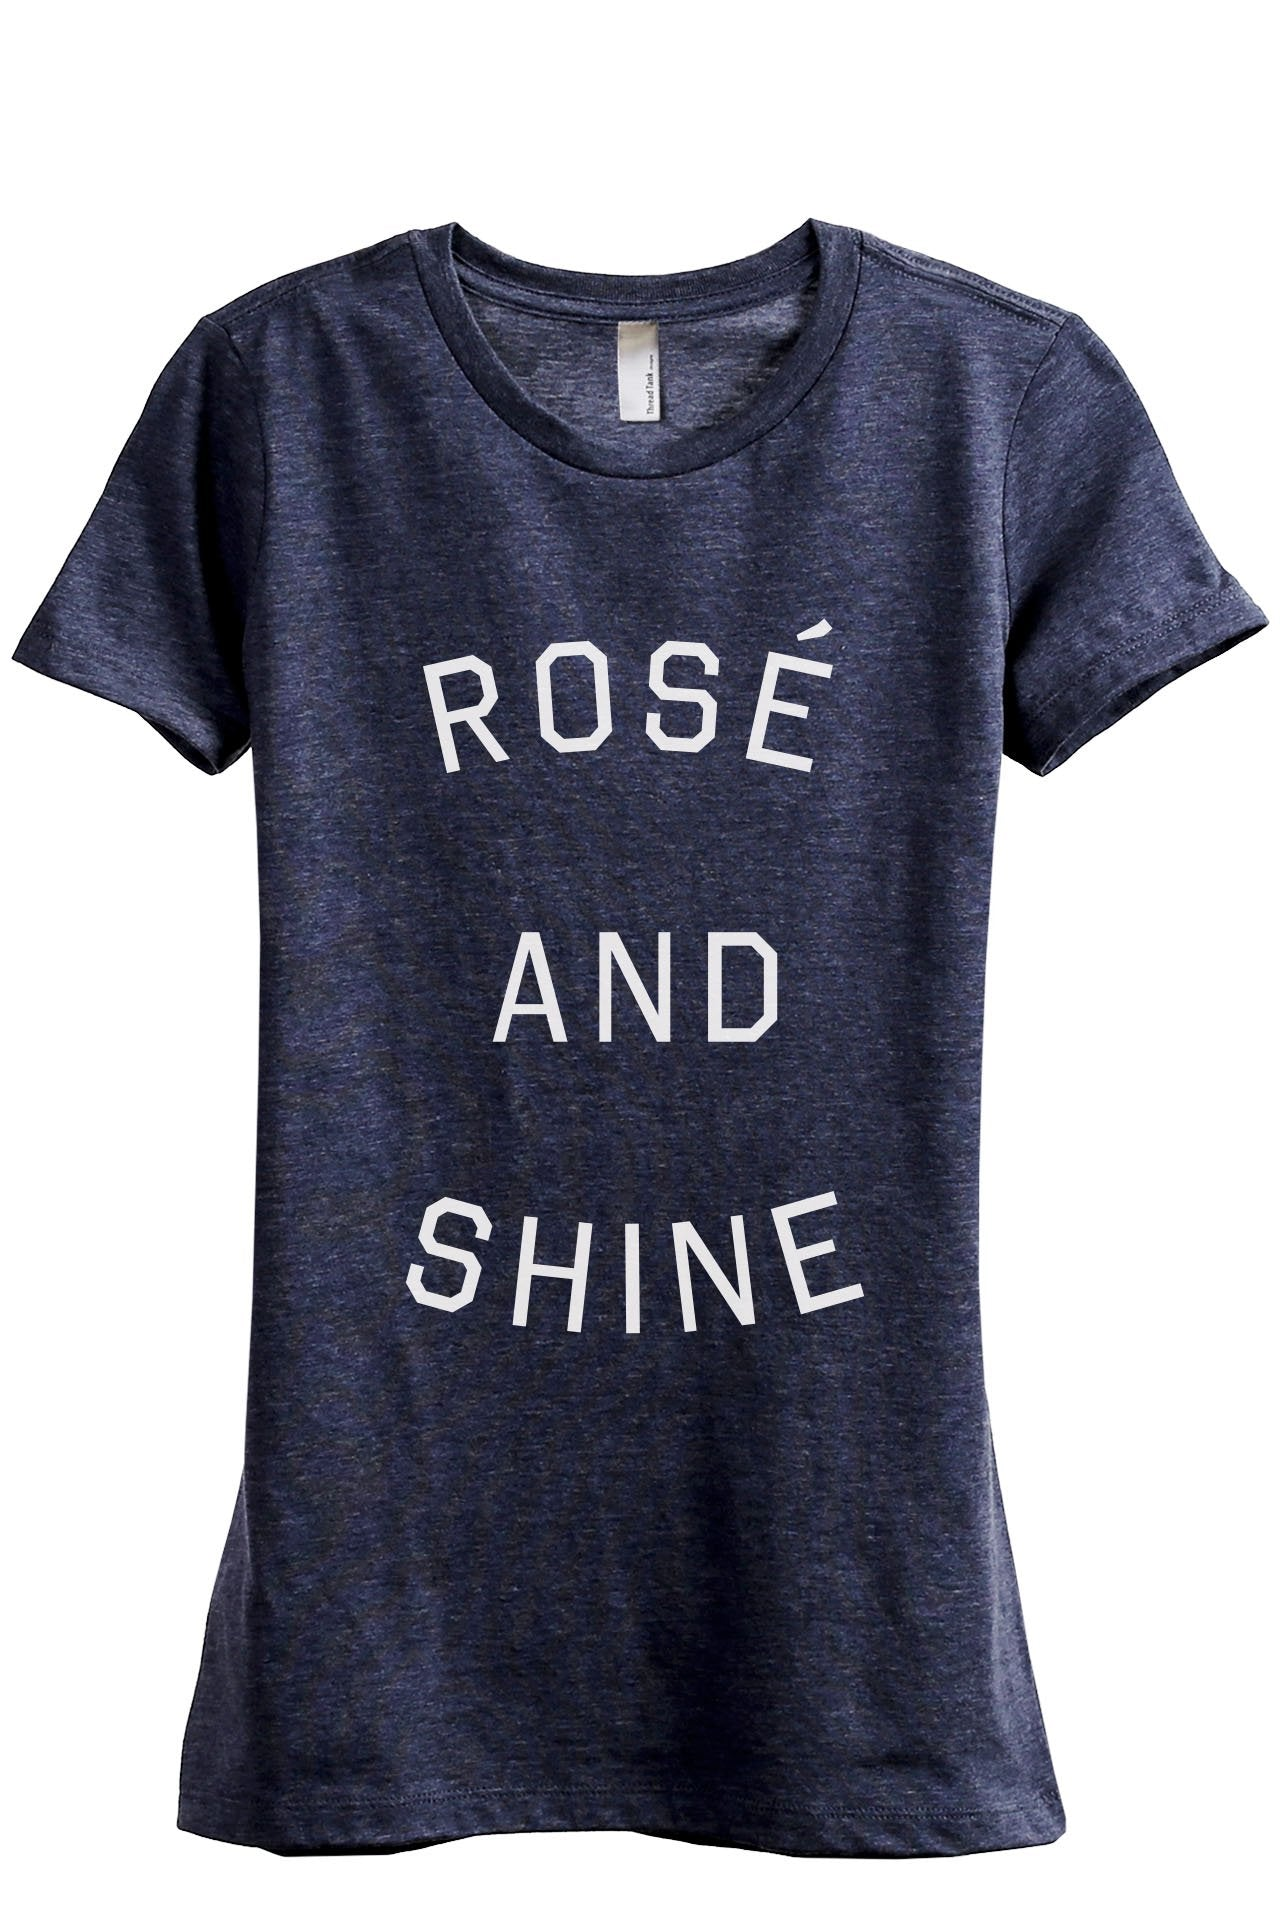 Rose And Shine Women's Relaxed Crewneck T-Shirt Top Tee Heather Navy